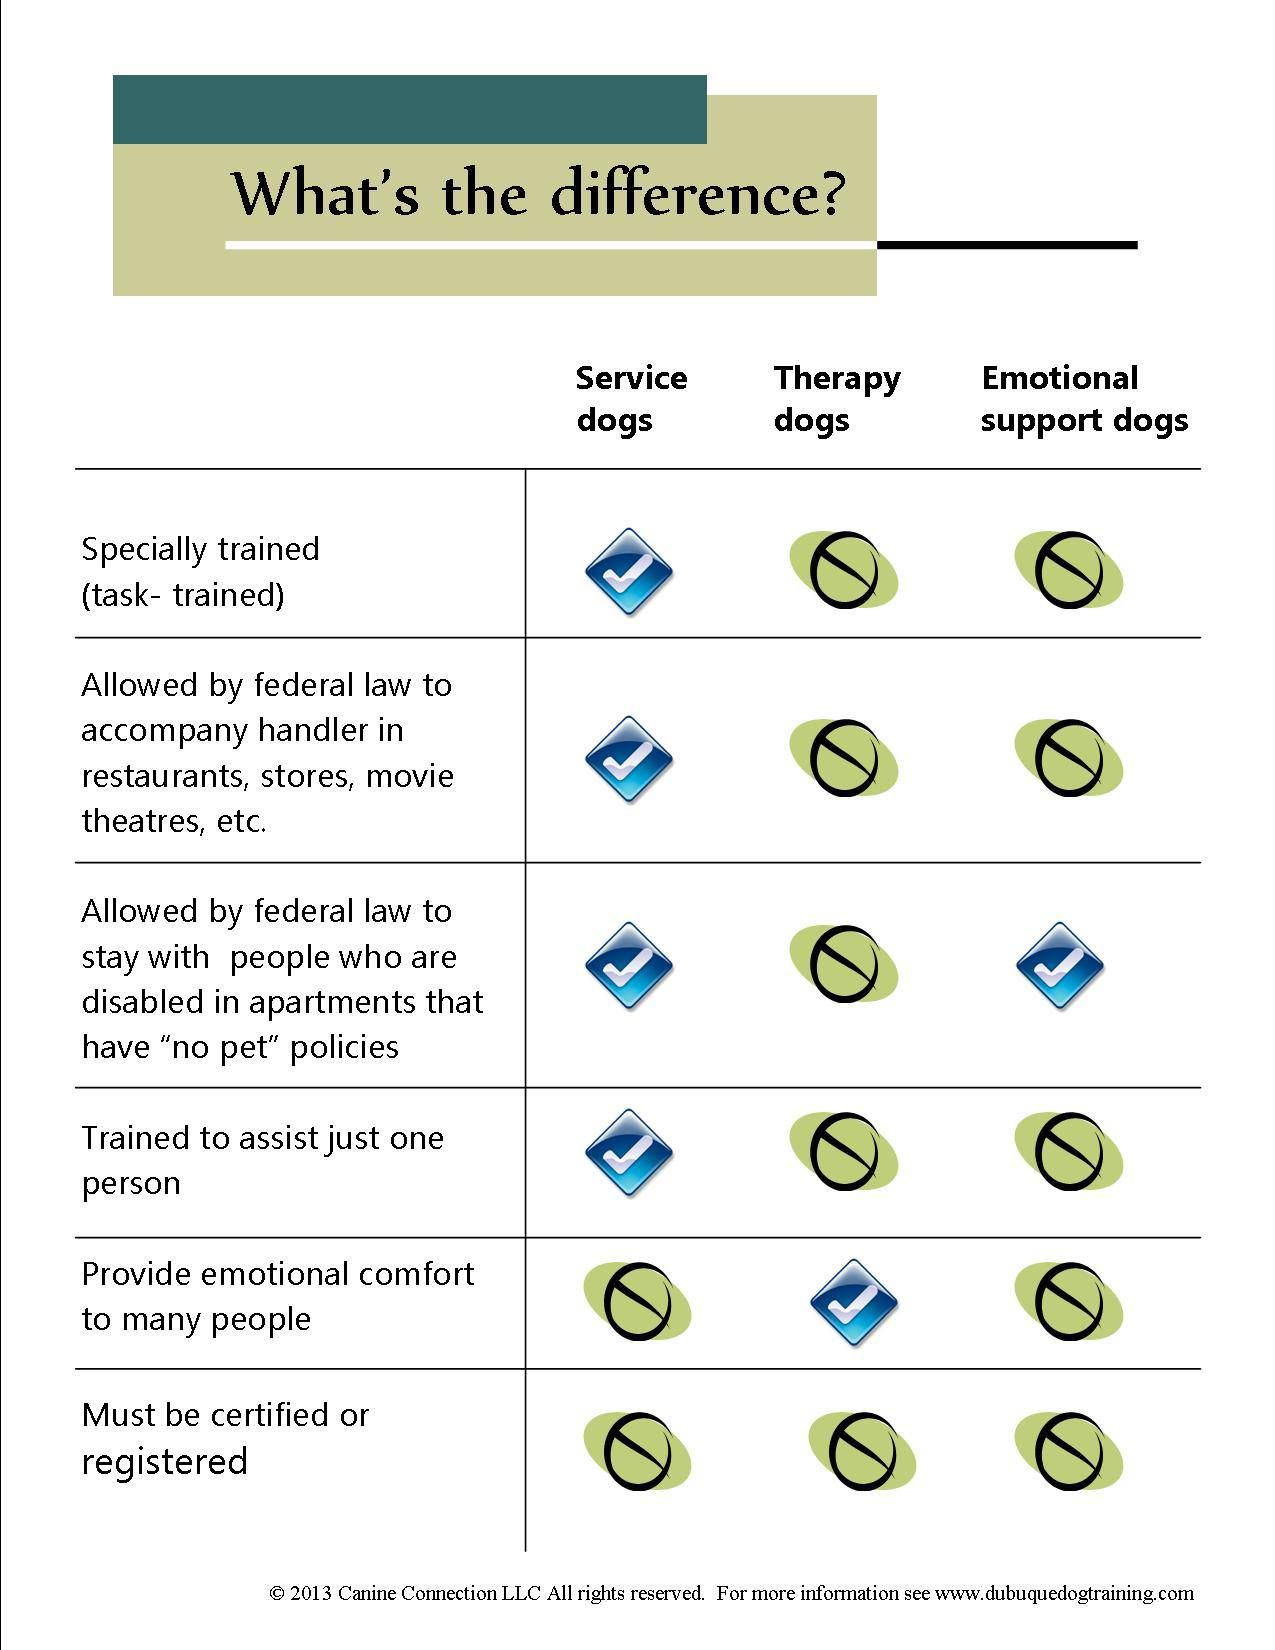 While ESA's and Therapy Dogs are subject to different